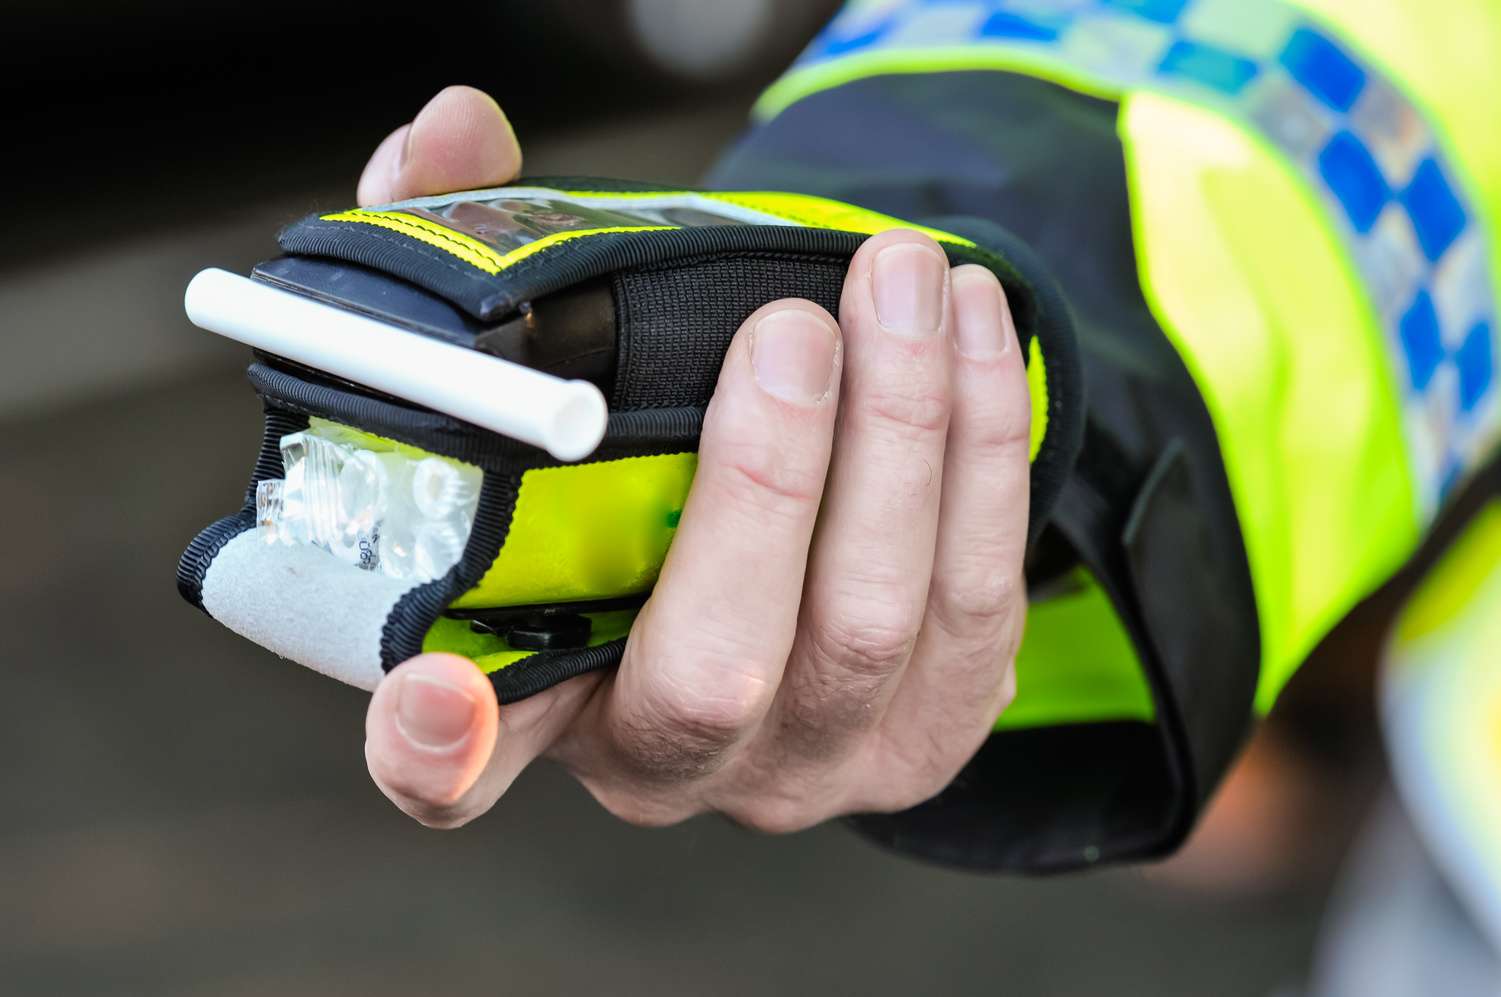 How many drinks is over the legal driving limit?